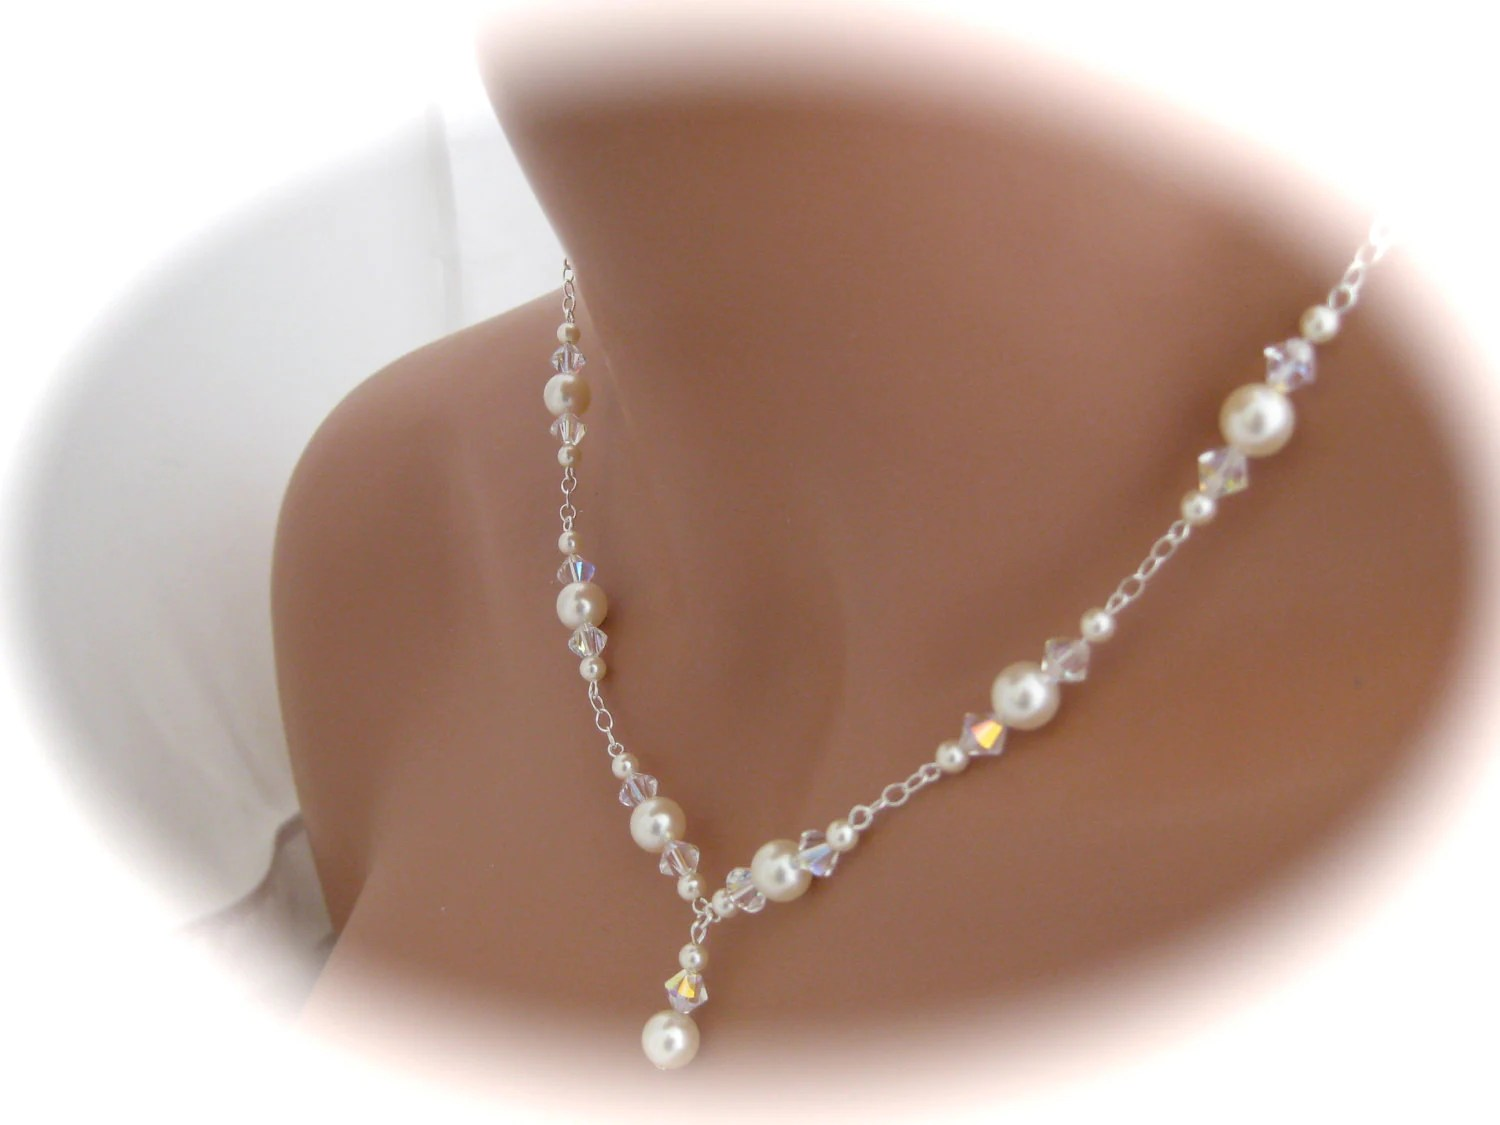 swarovski wedding jewelry sets wedding jewelry swarovski wedding jewelry sets photos